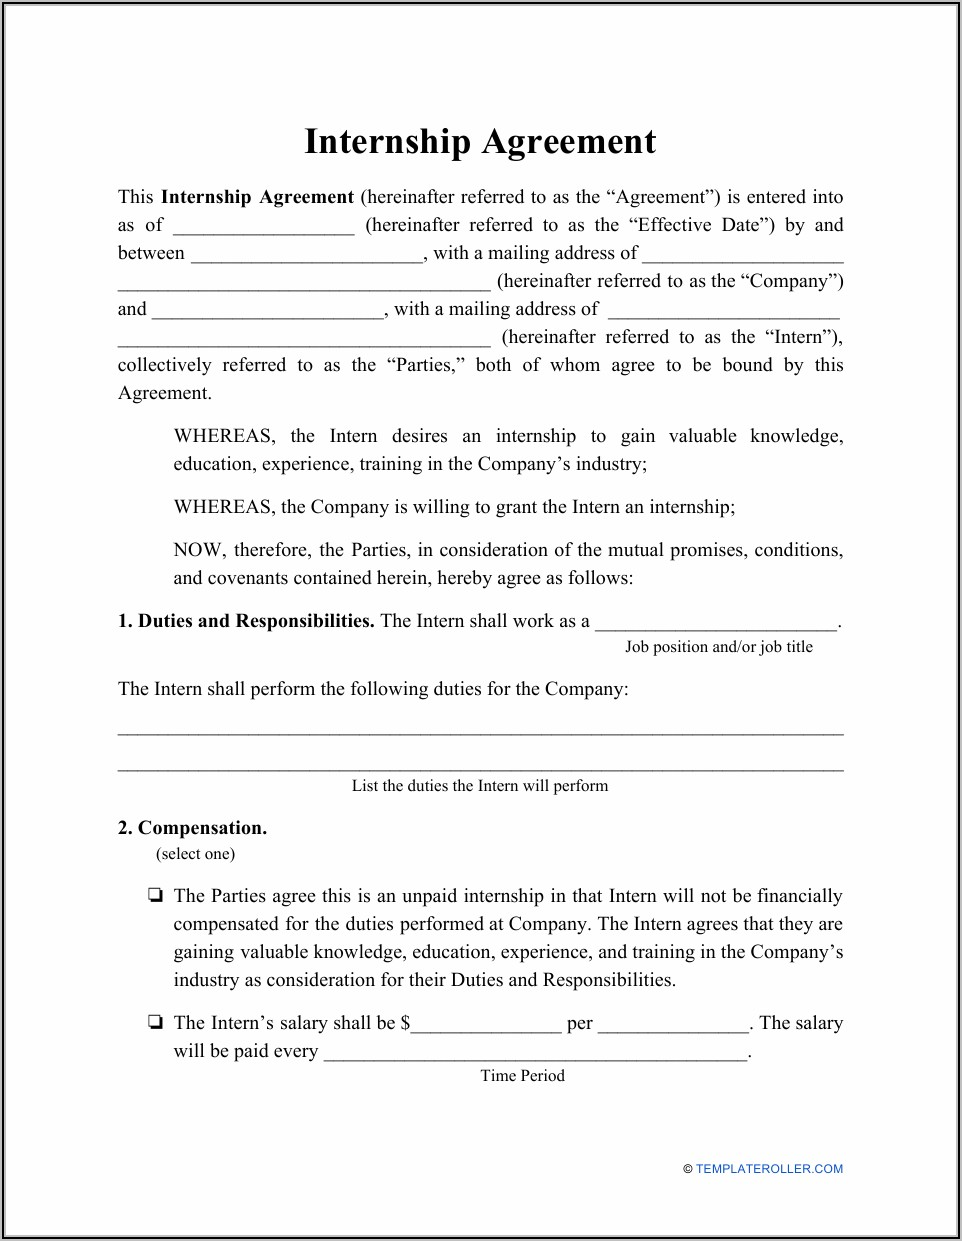 Trademark License Agreement Template Canada